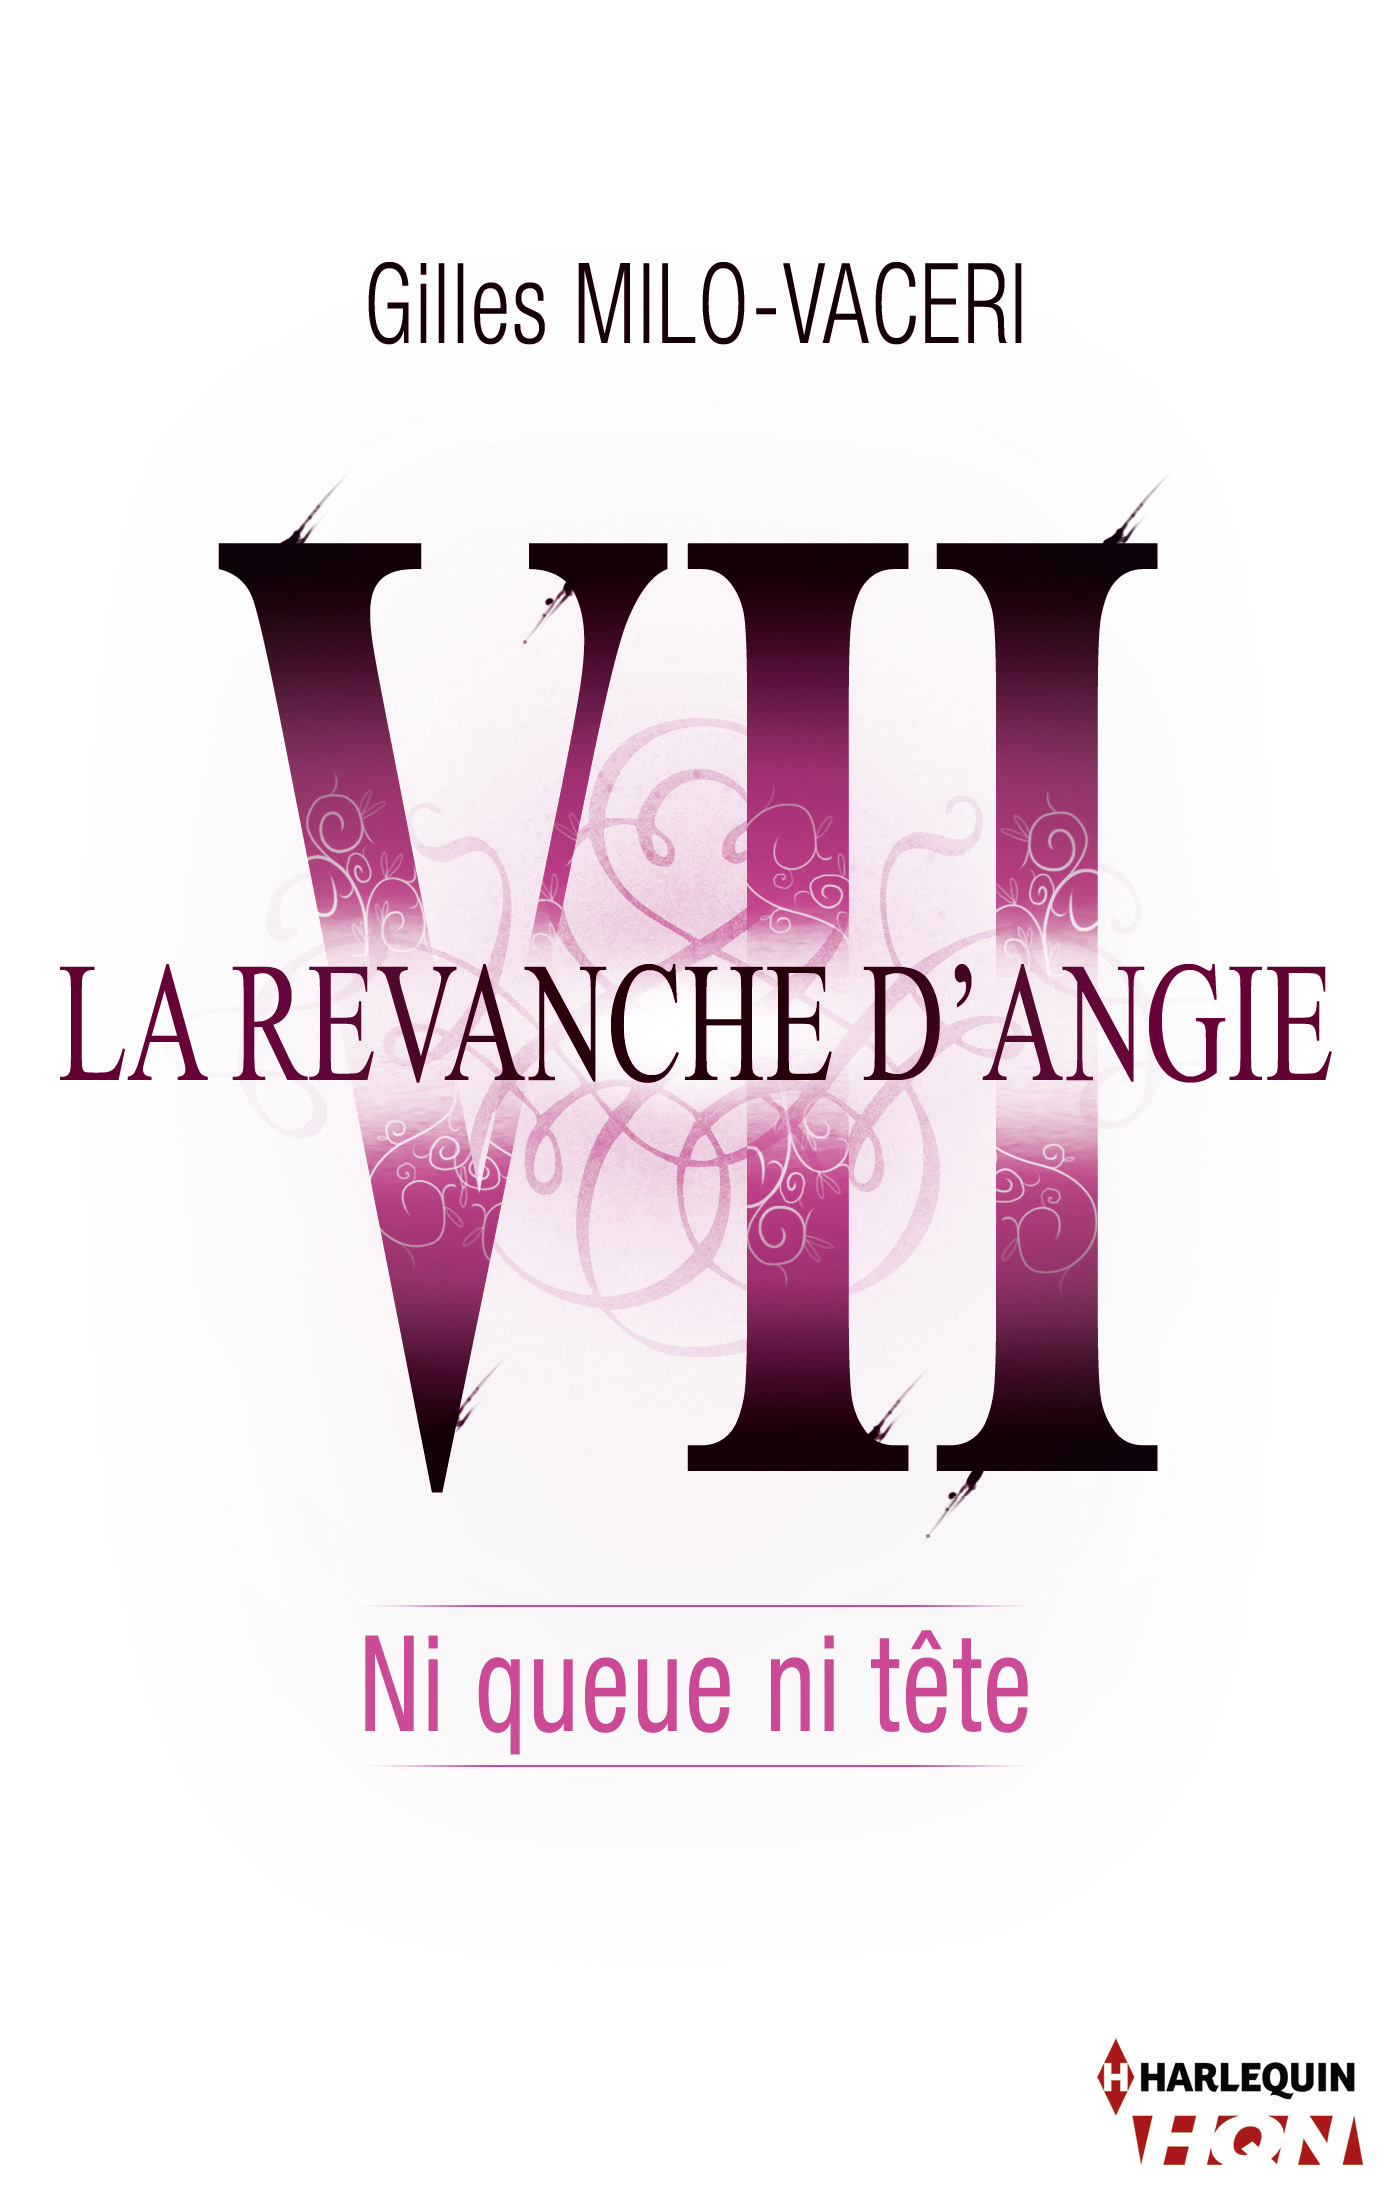 7 - La revanche d'Angie - Ni queue ni tête